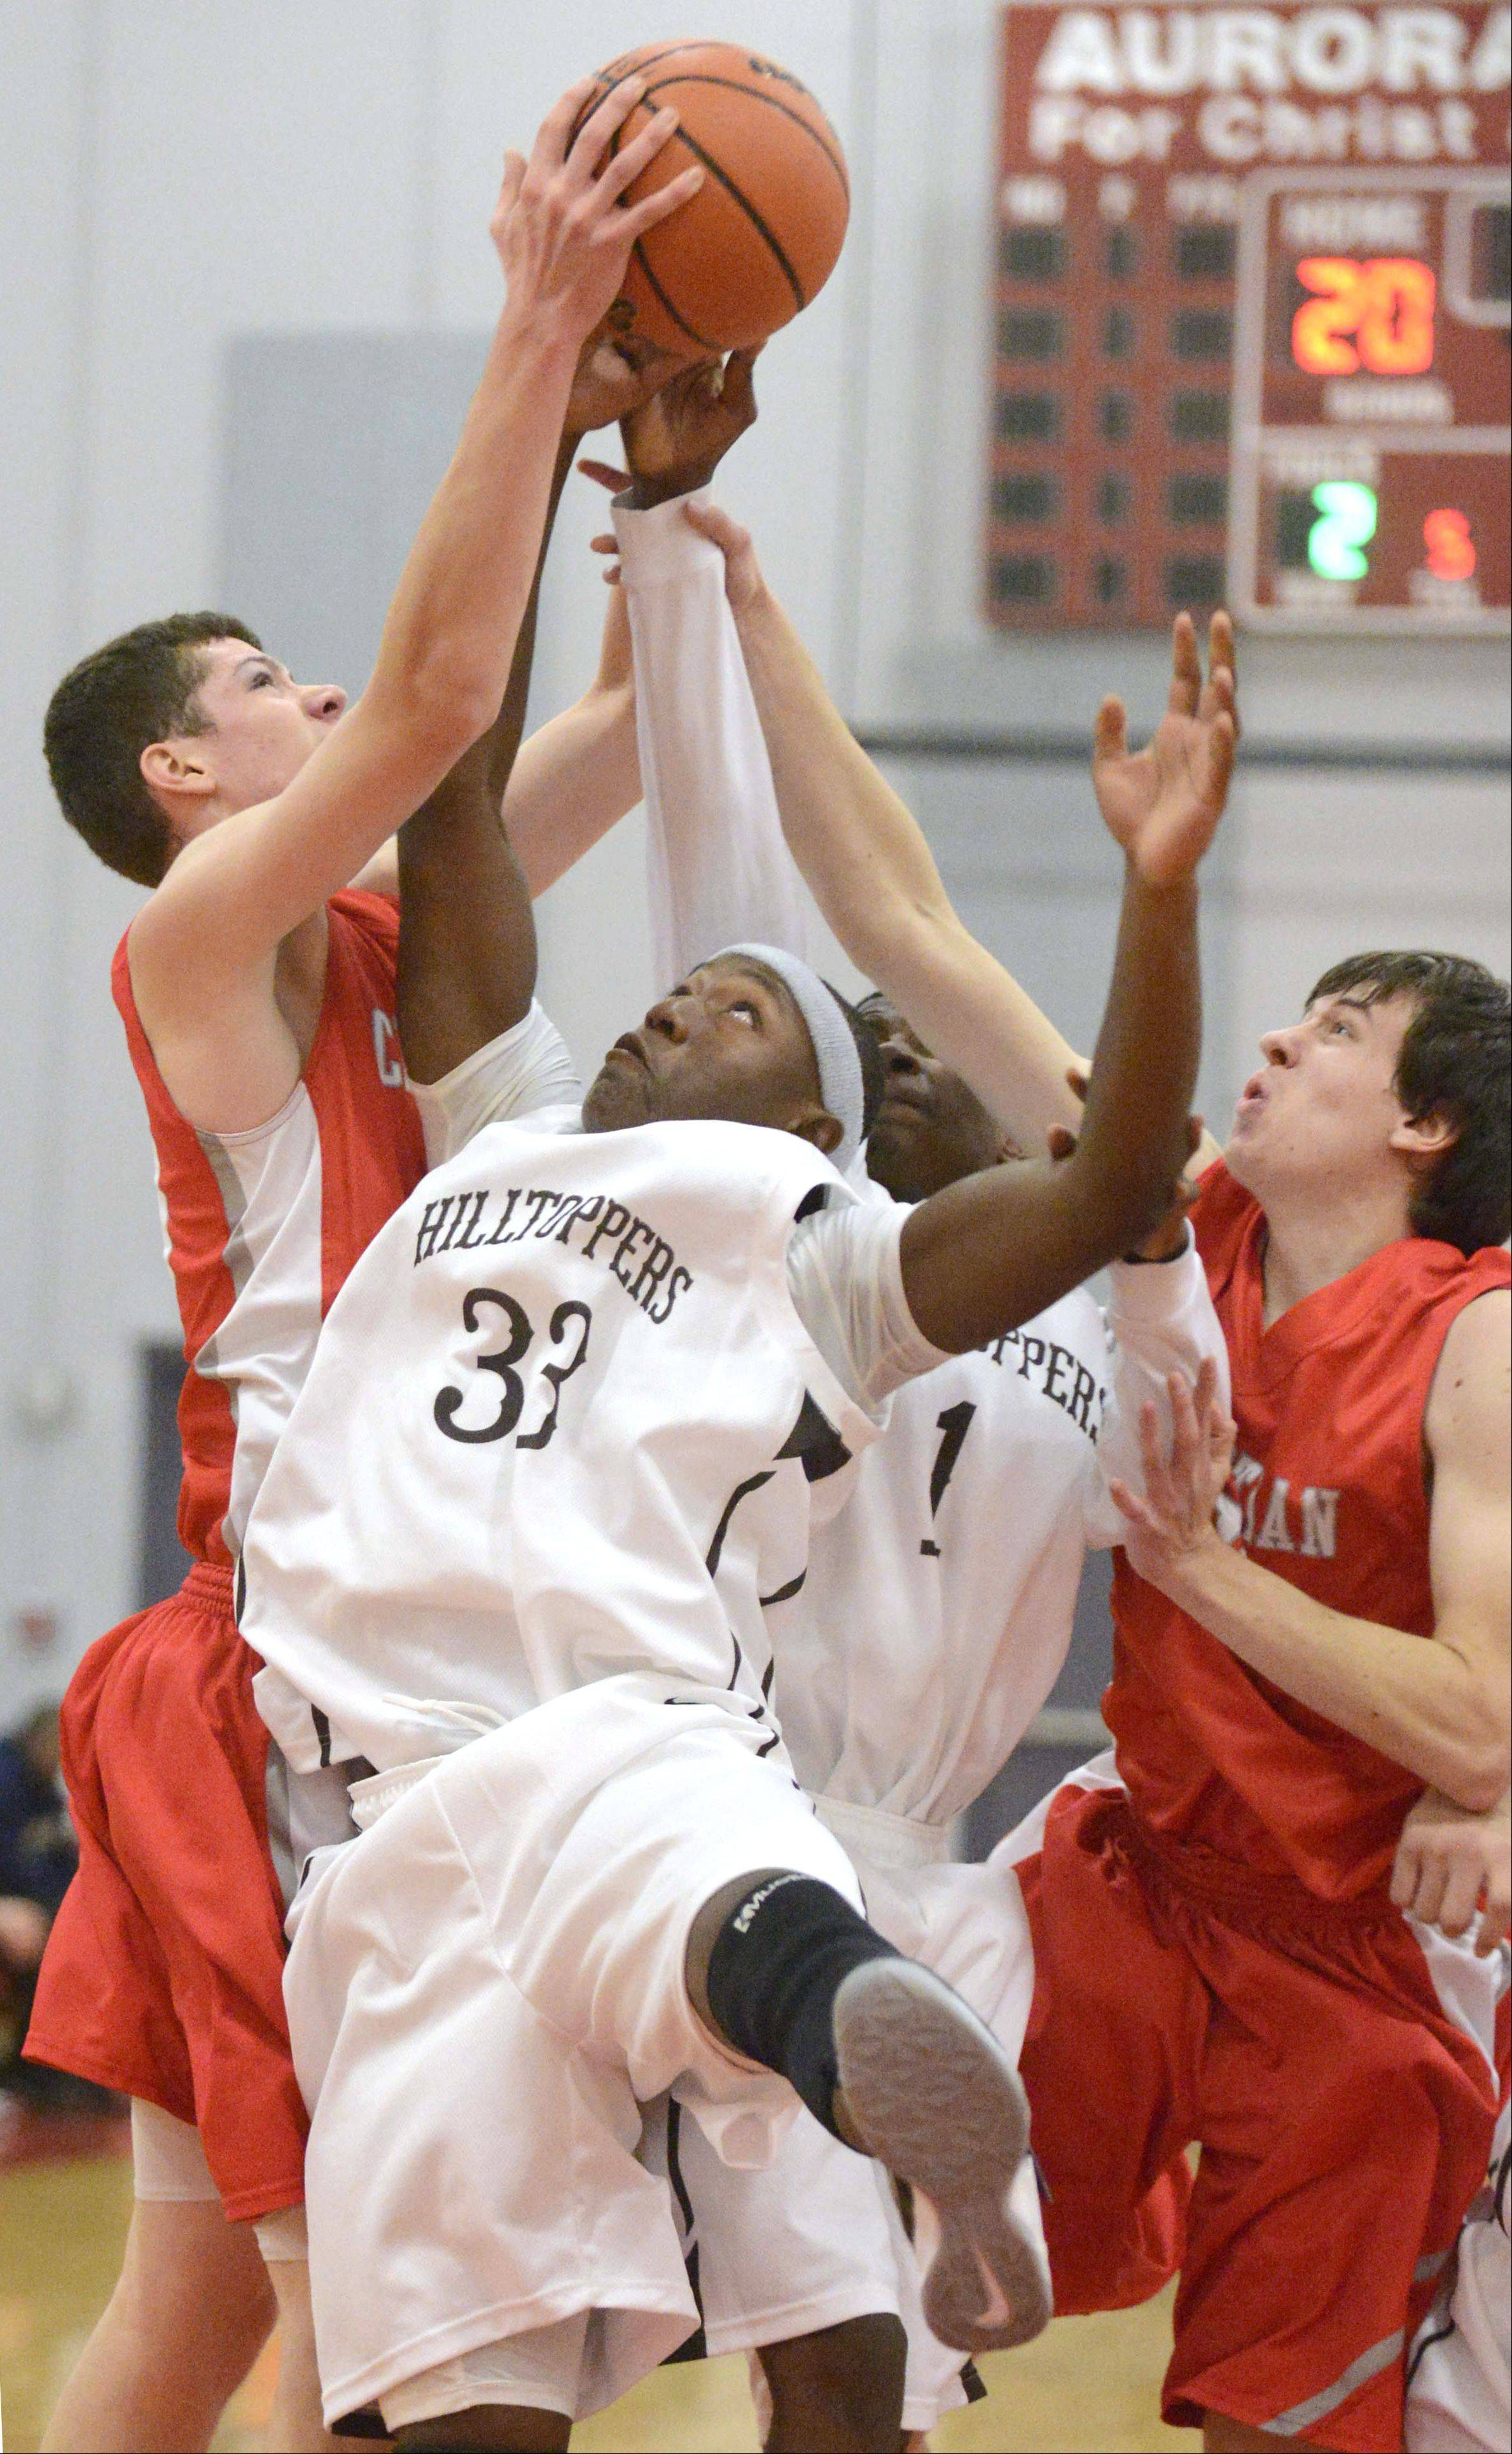 Images from the Joliet Catholic vs. Aurora Christian boys basketball game Wednesday, December 4, 2013.